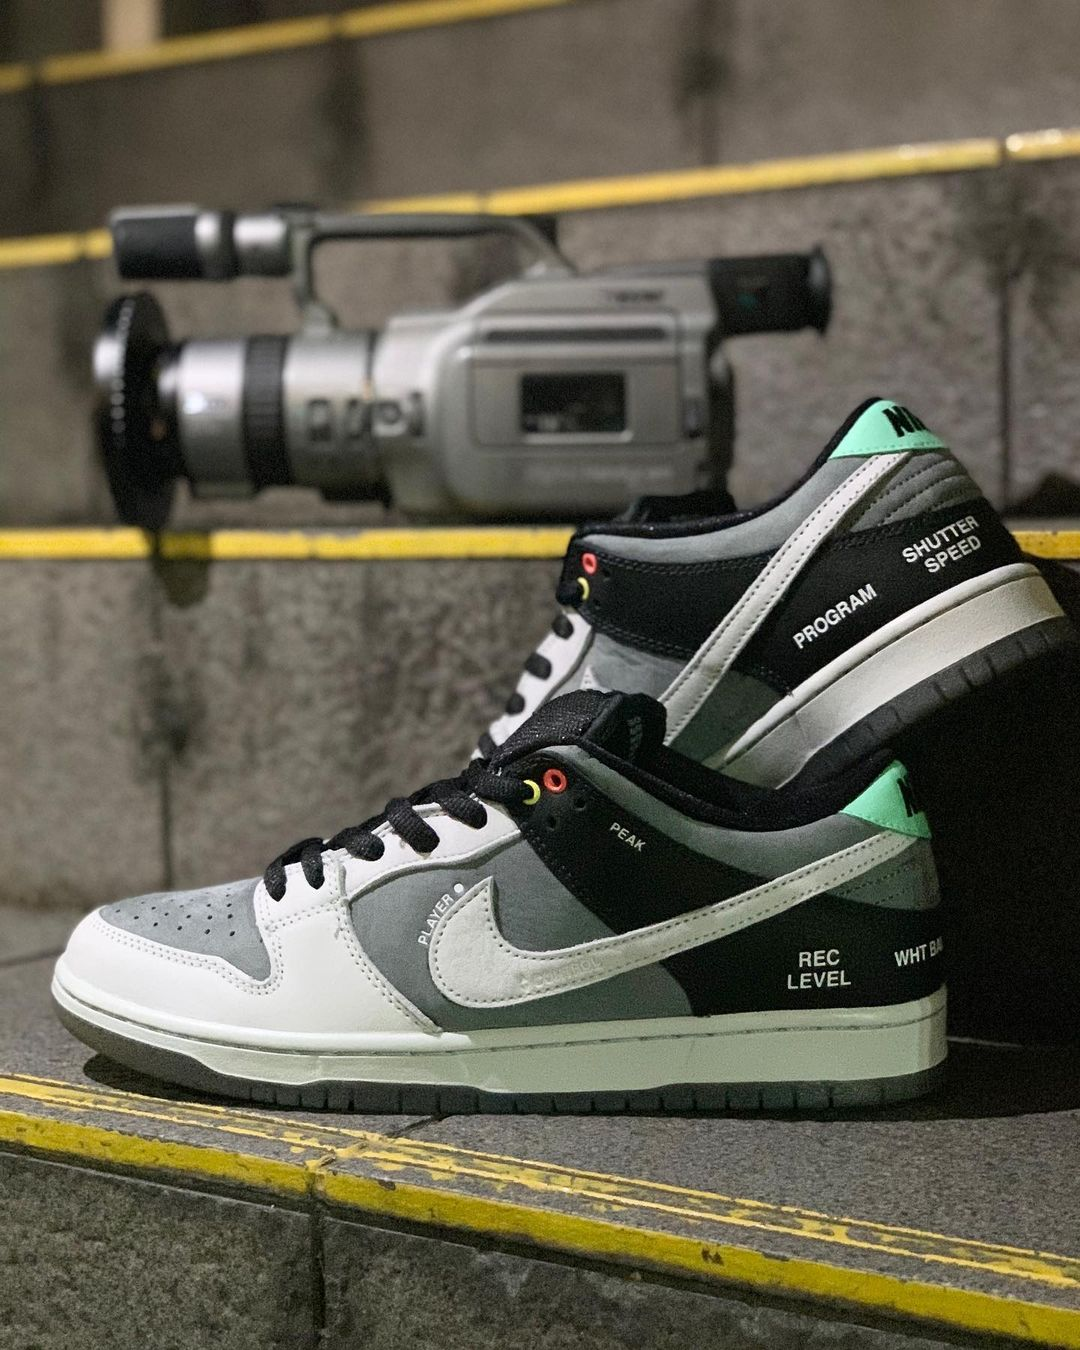 nike-sb-dunk-low-camcorder-release-20210301